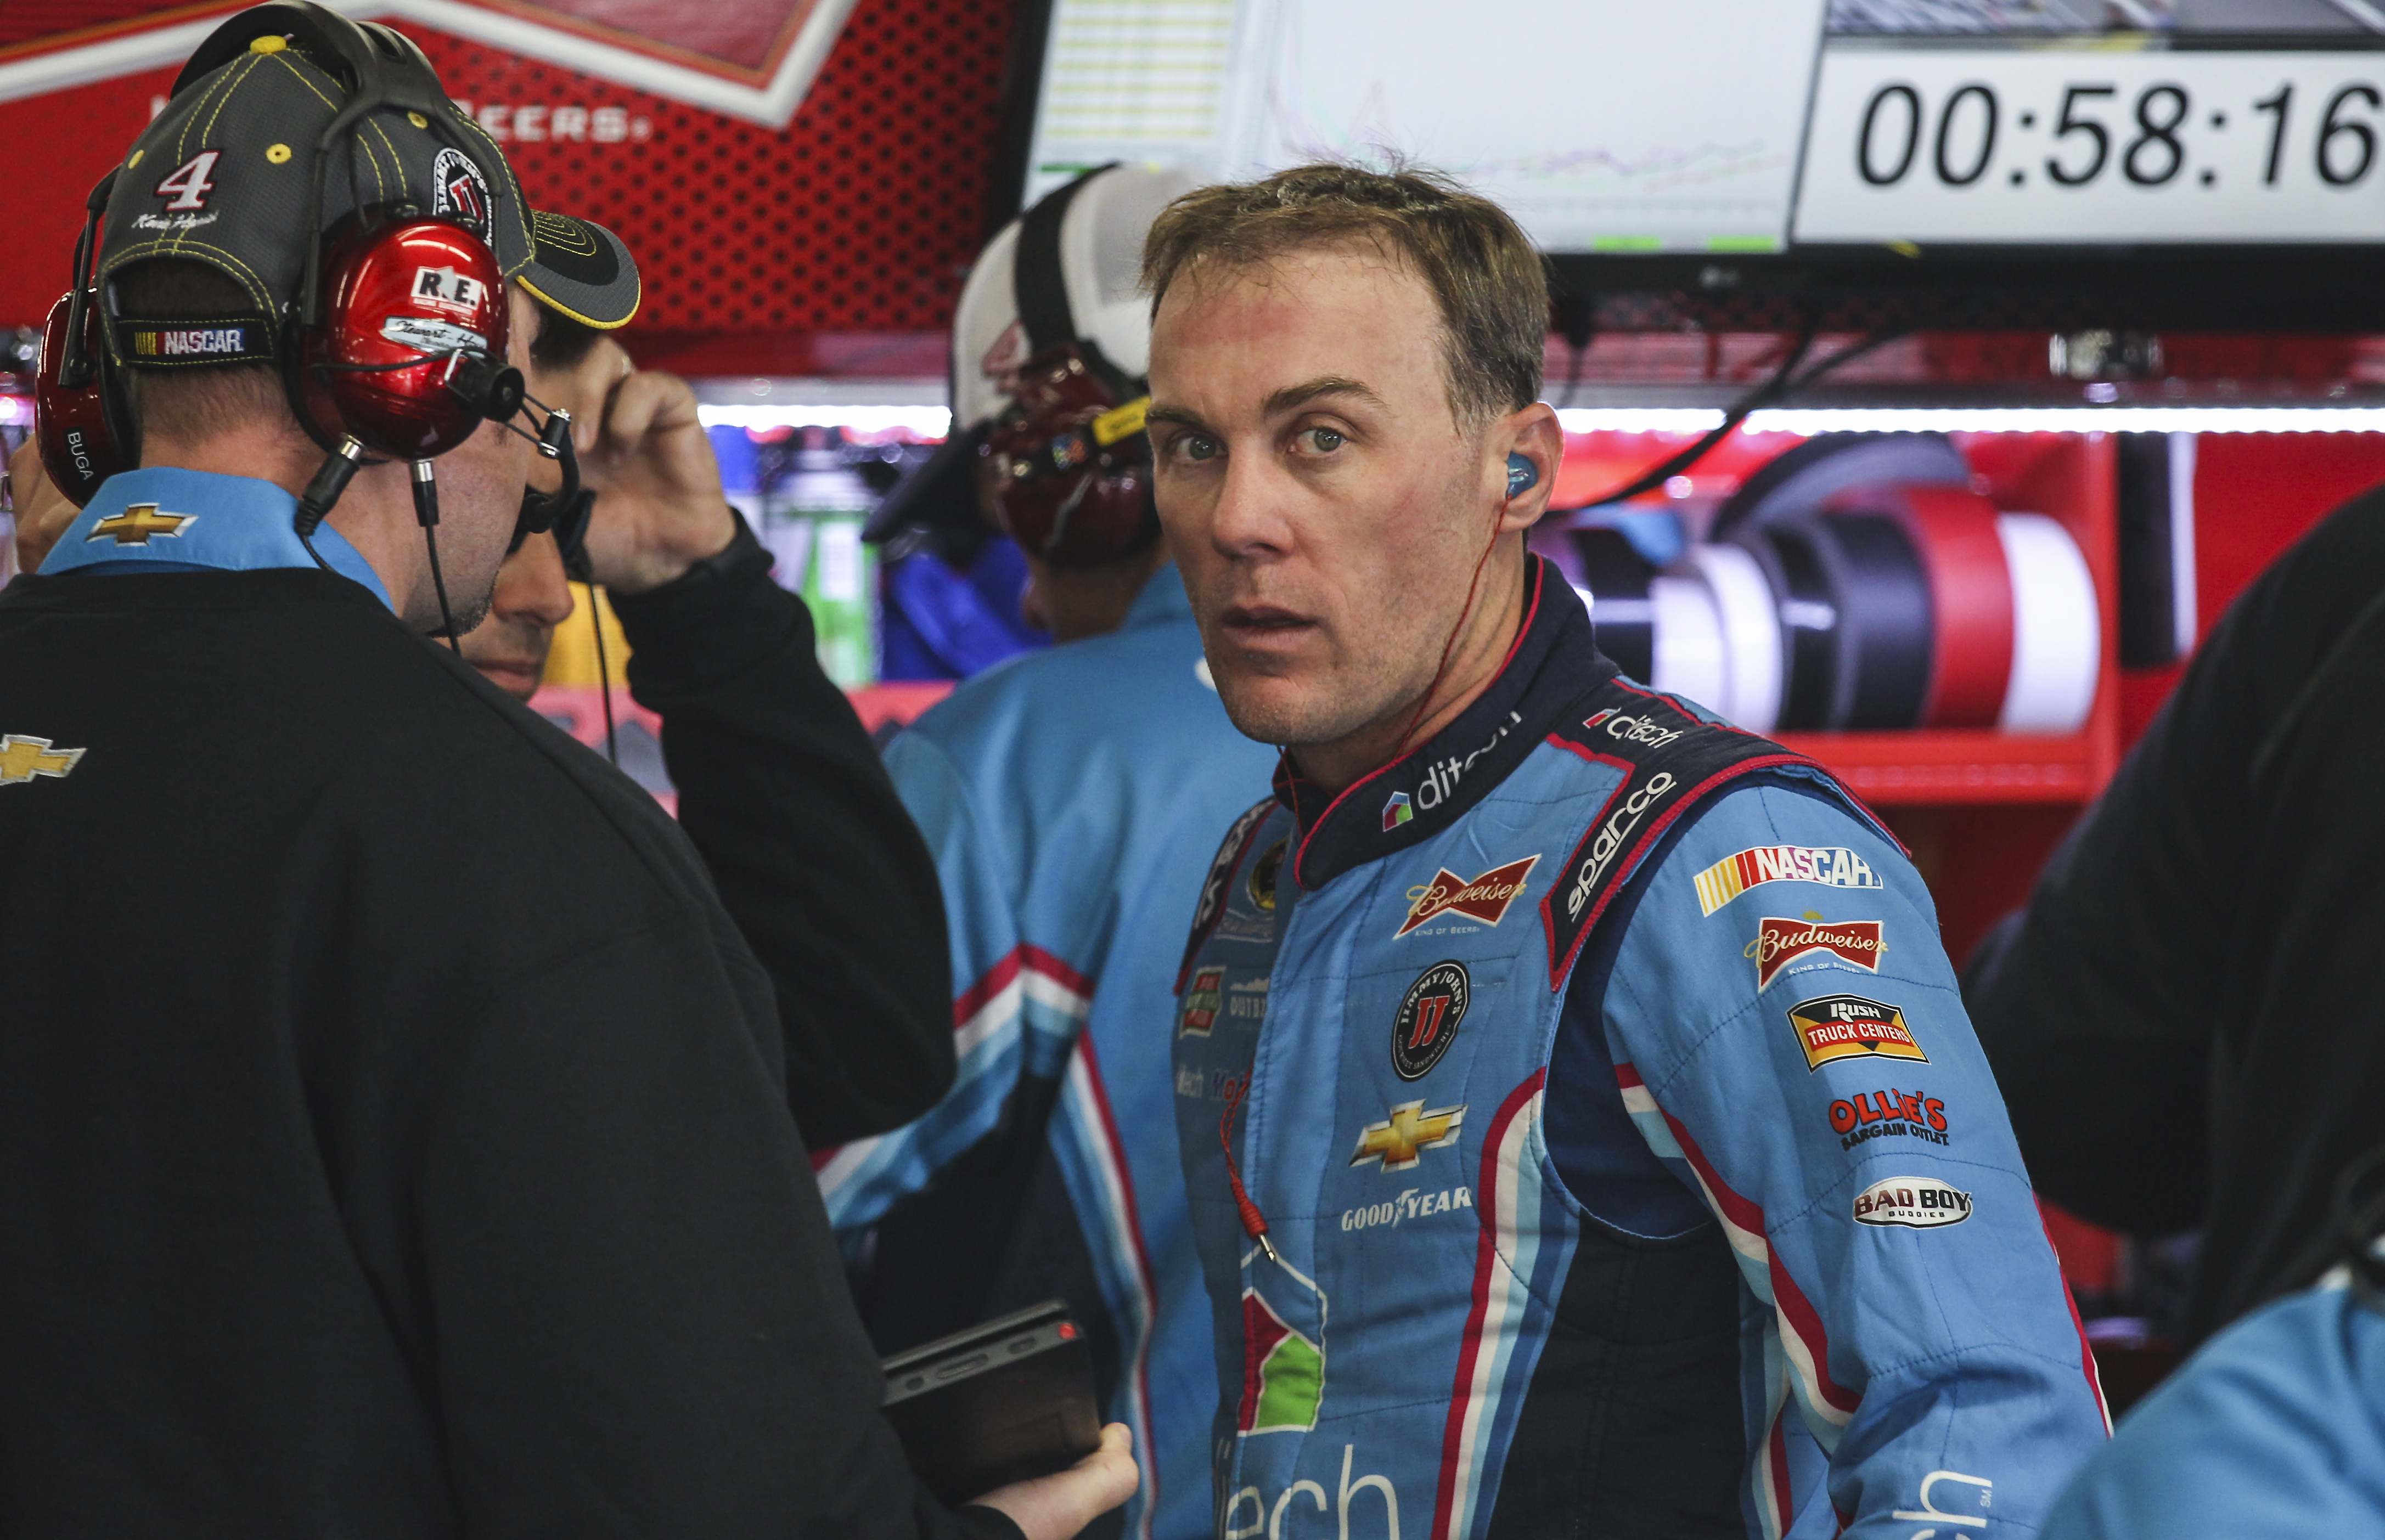 Driver Kevin Harvick waits in the garage while his car is worked on during practice for Sunday's NASCAR Sprint Cup series auto race at New Hampshire Motor Speedway in Loudon, N.H., Friday, Sept. 25, 2015  (AP Photo/Cheryl Senter)